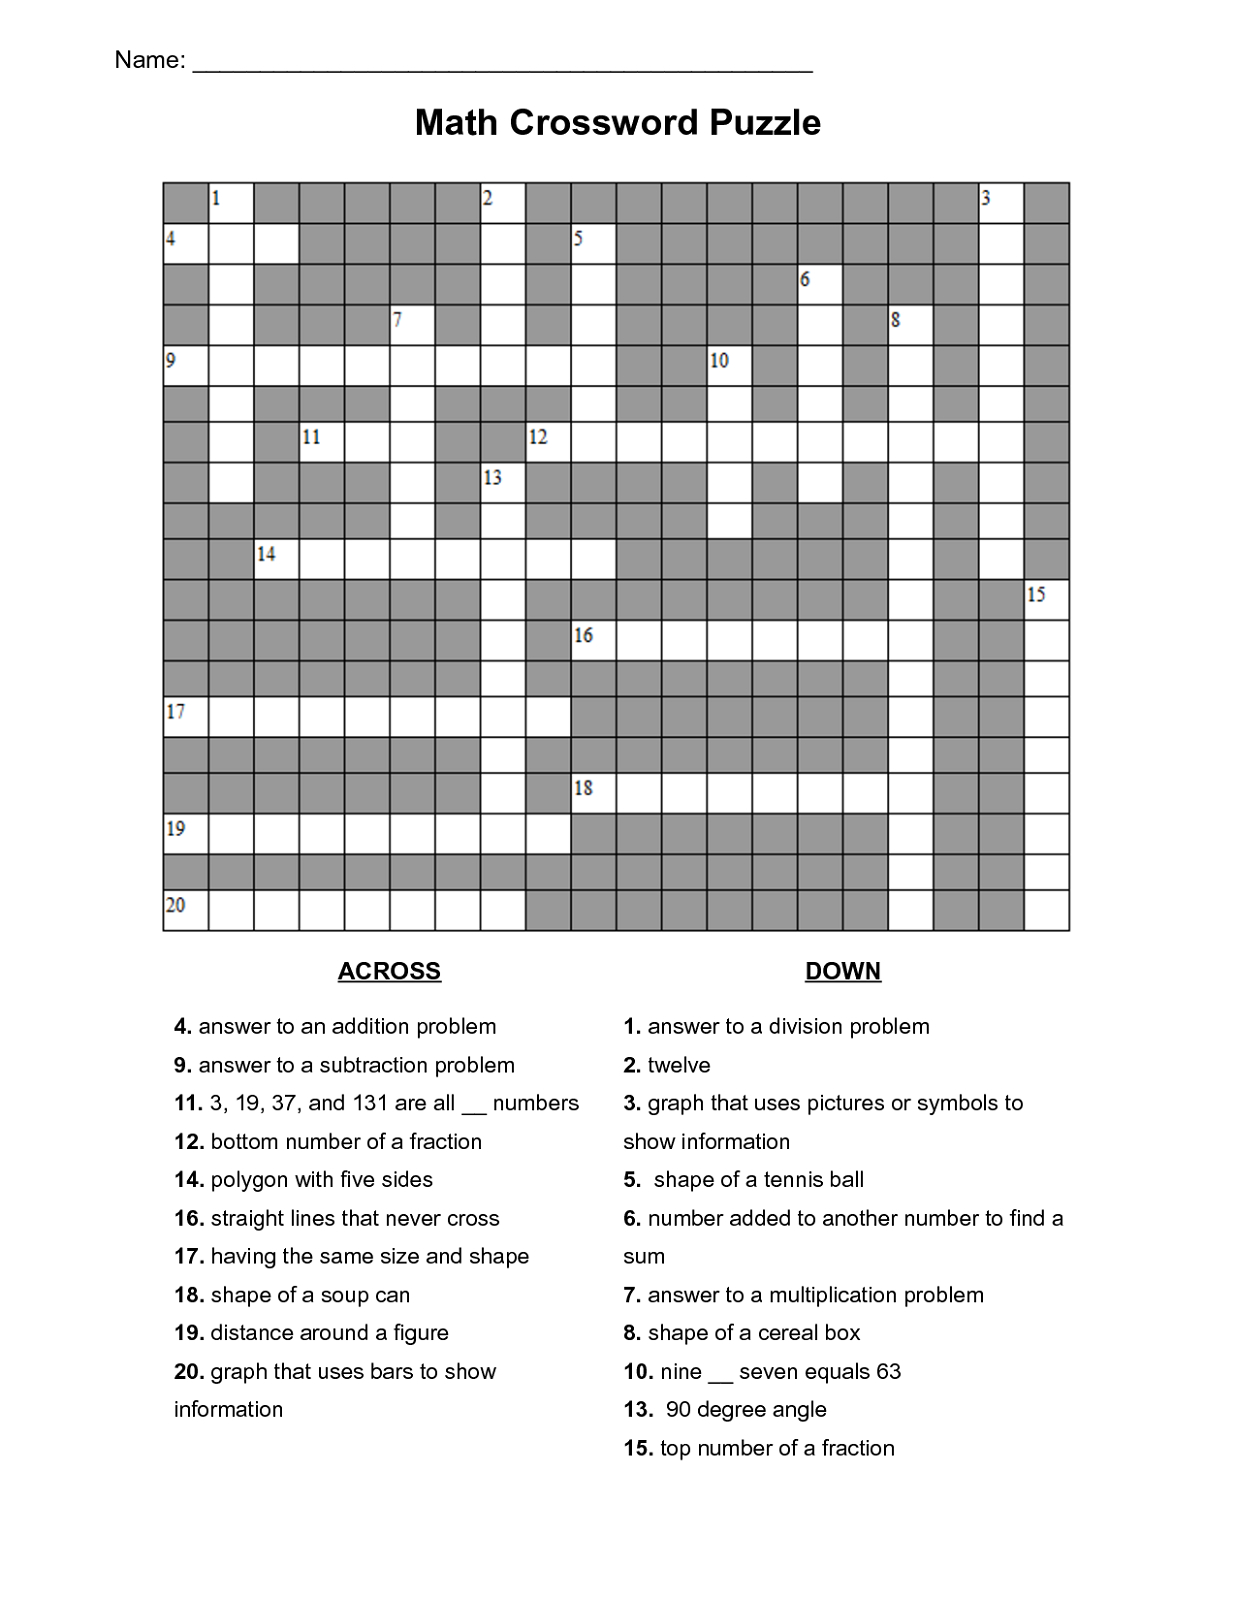 Math Puzzles Printable For Learning | Activity Shelter - Printable Crossword Puzzles Grade 3